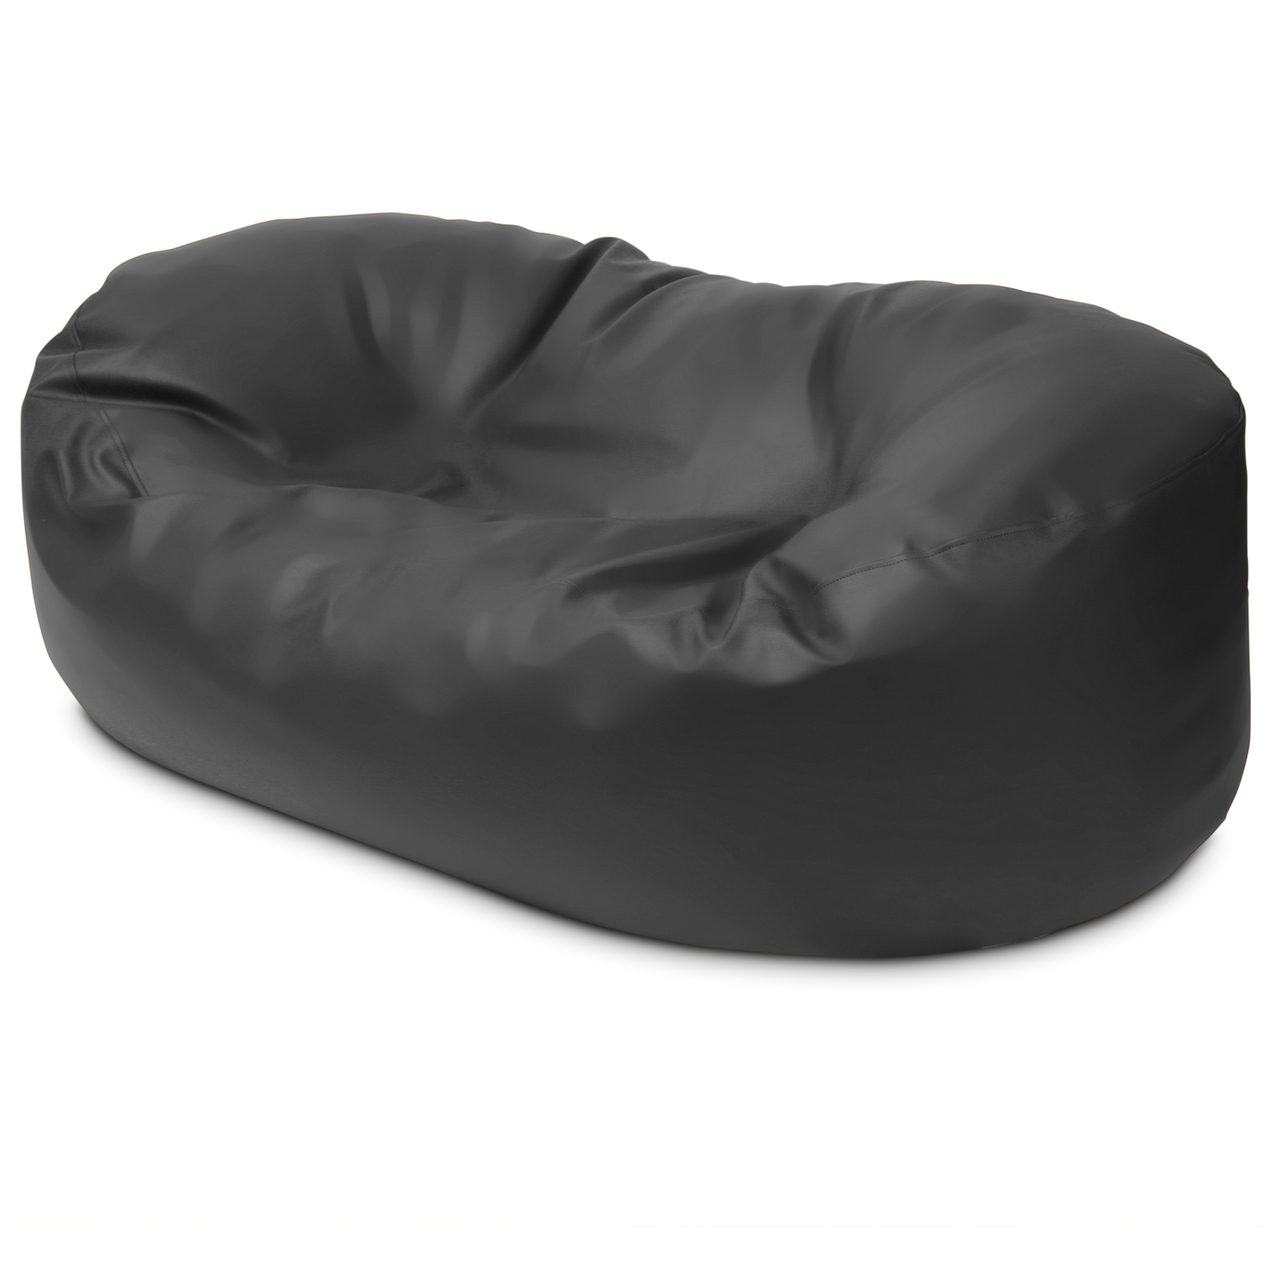 Classic 2m Couch in thunder